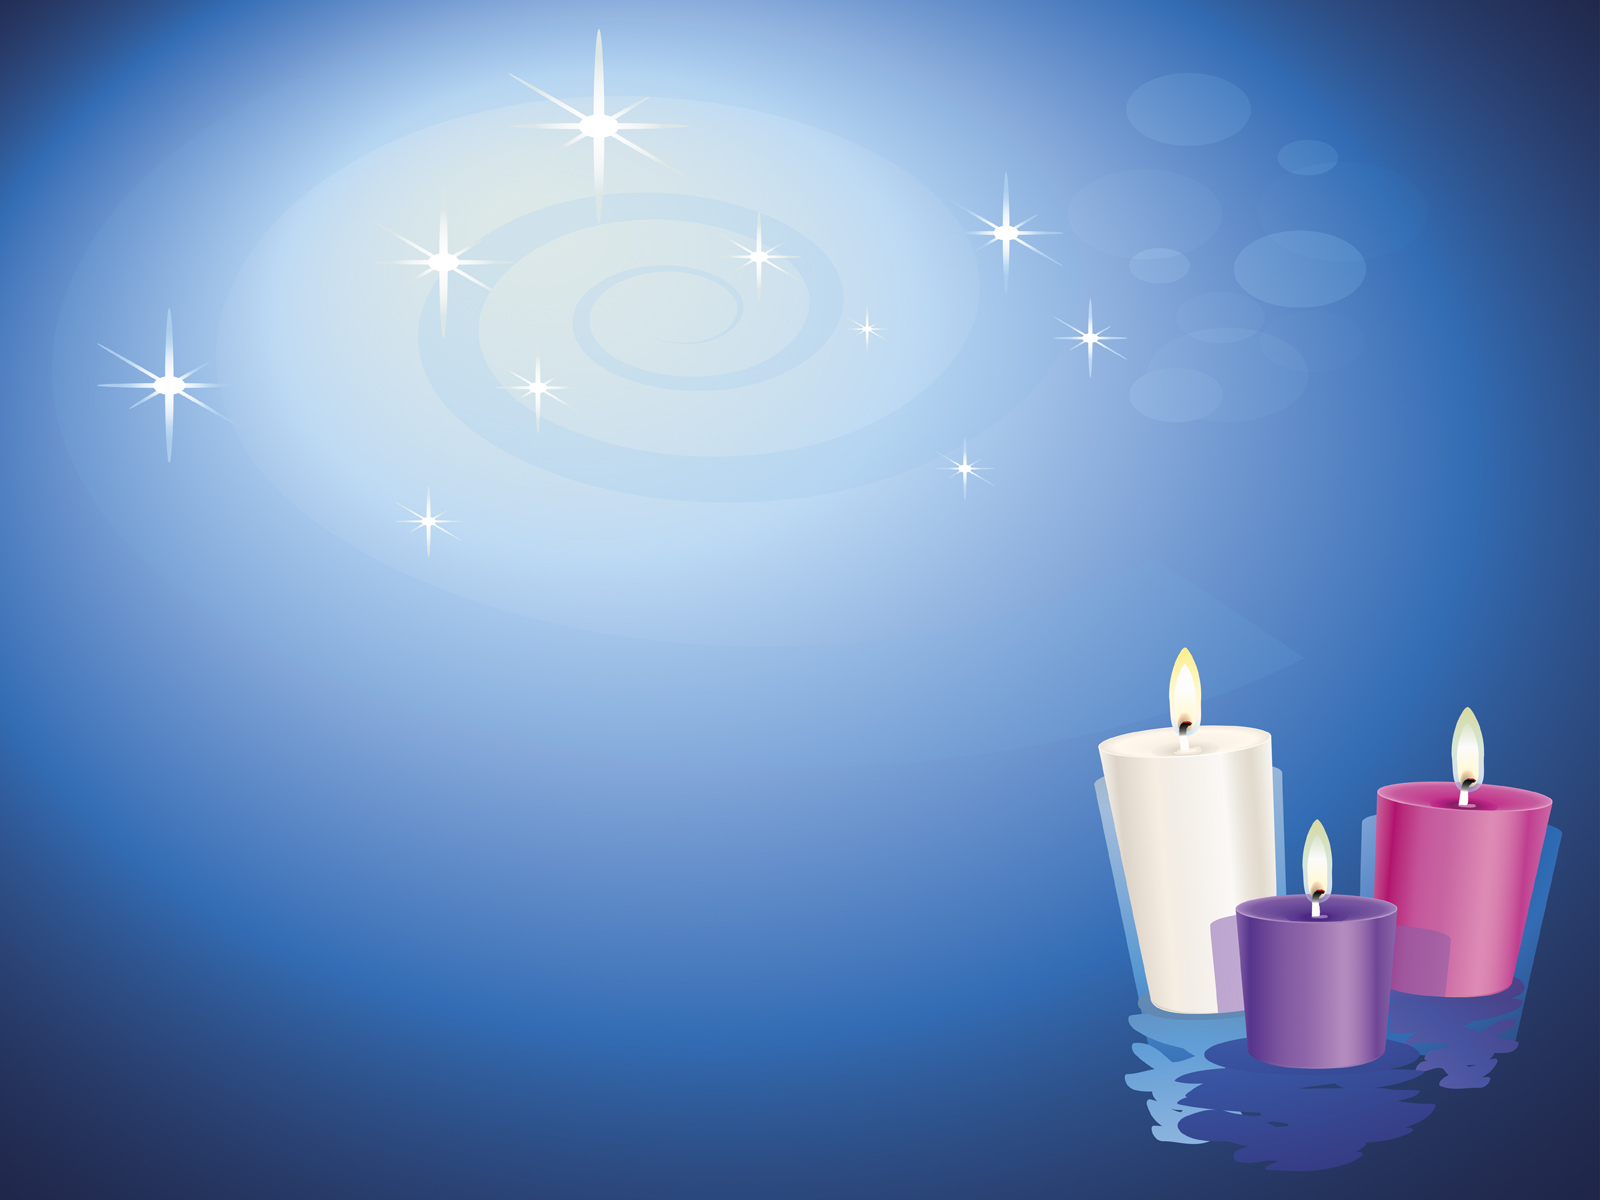 lit christian candles backgrounds religious templates